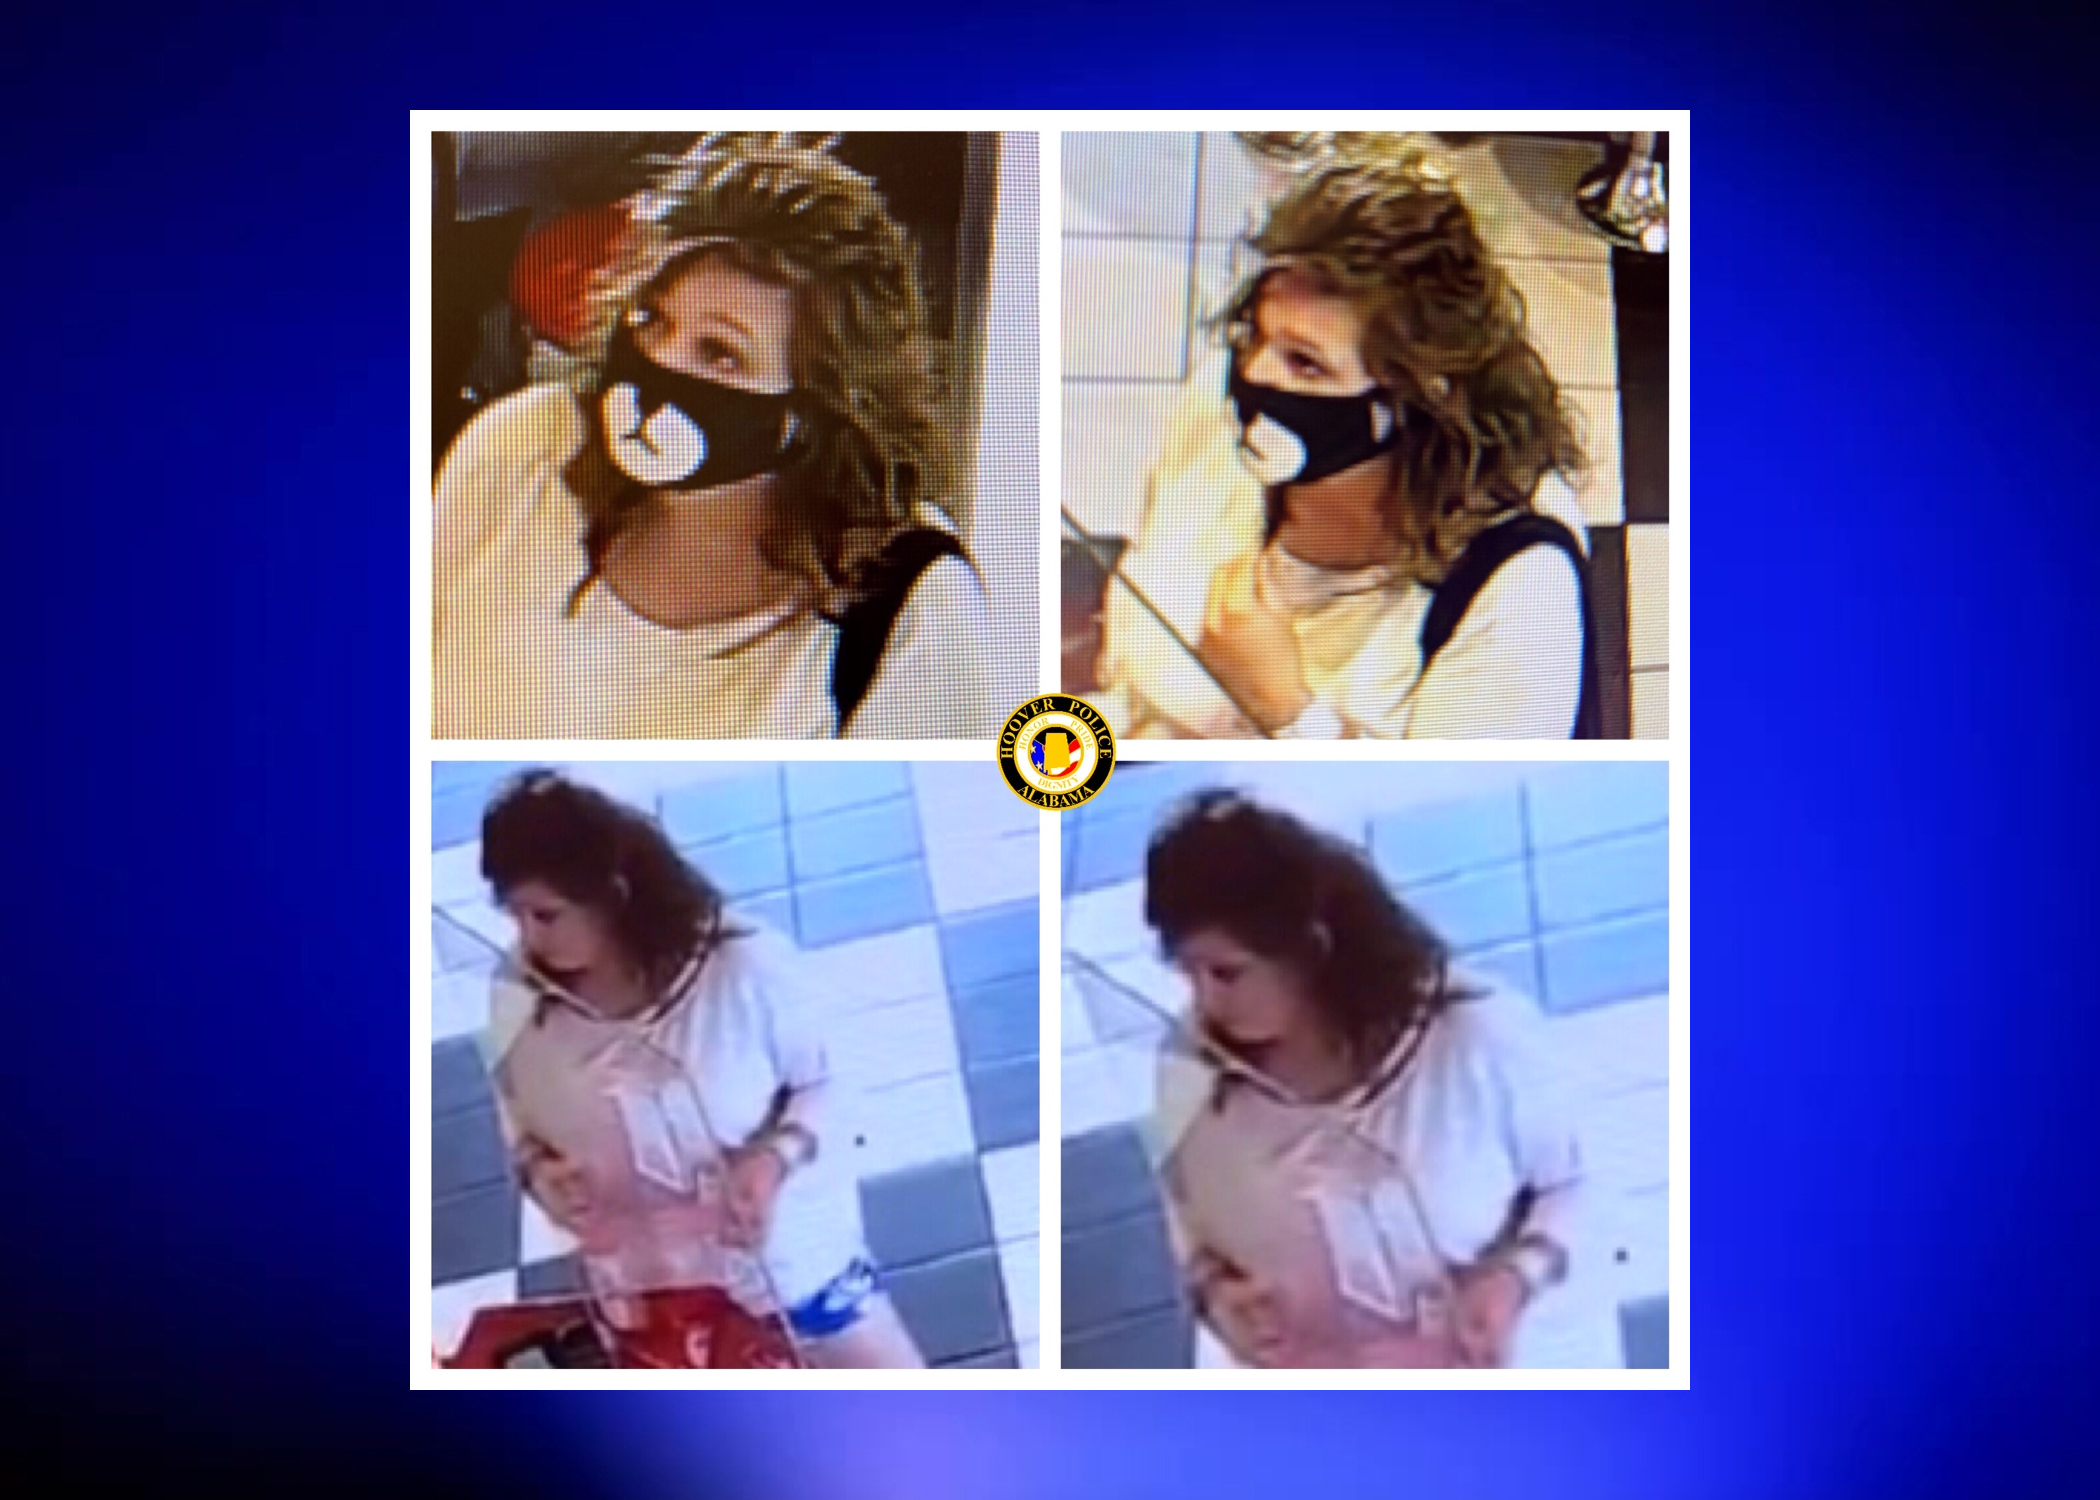 Woman wanted for questioning in multiple Hoover theft cases